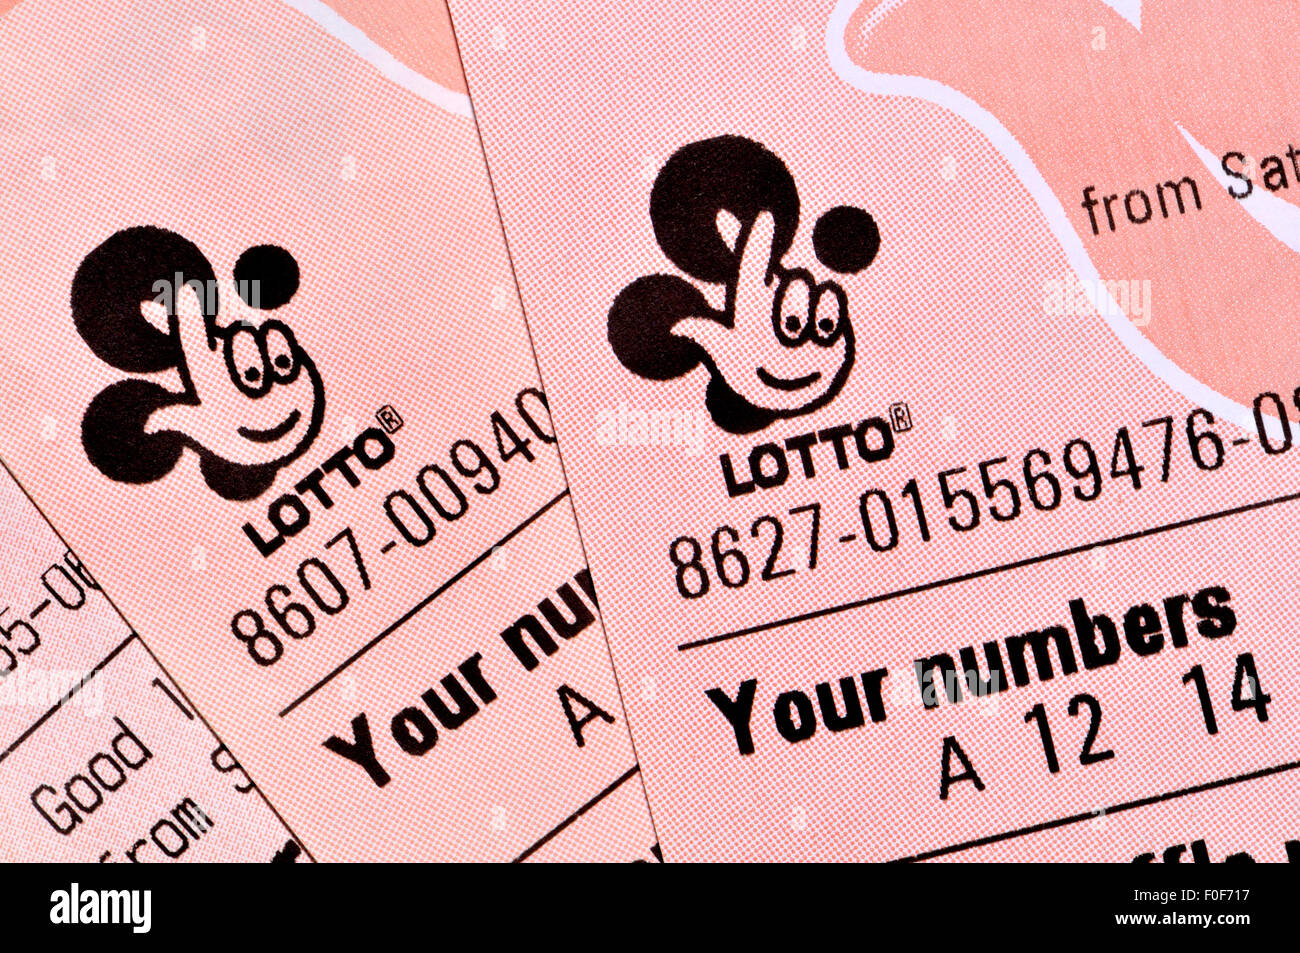 Lotto Stock Photos & Lotto Stock Images - Alamy